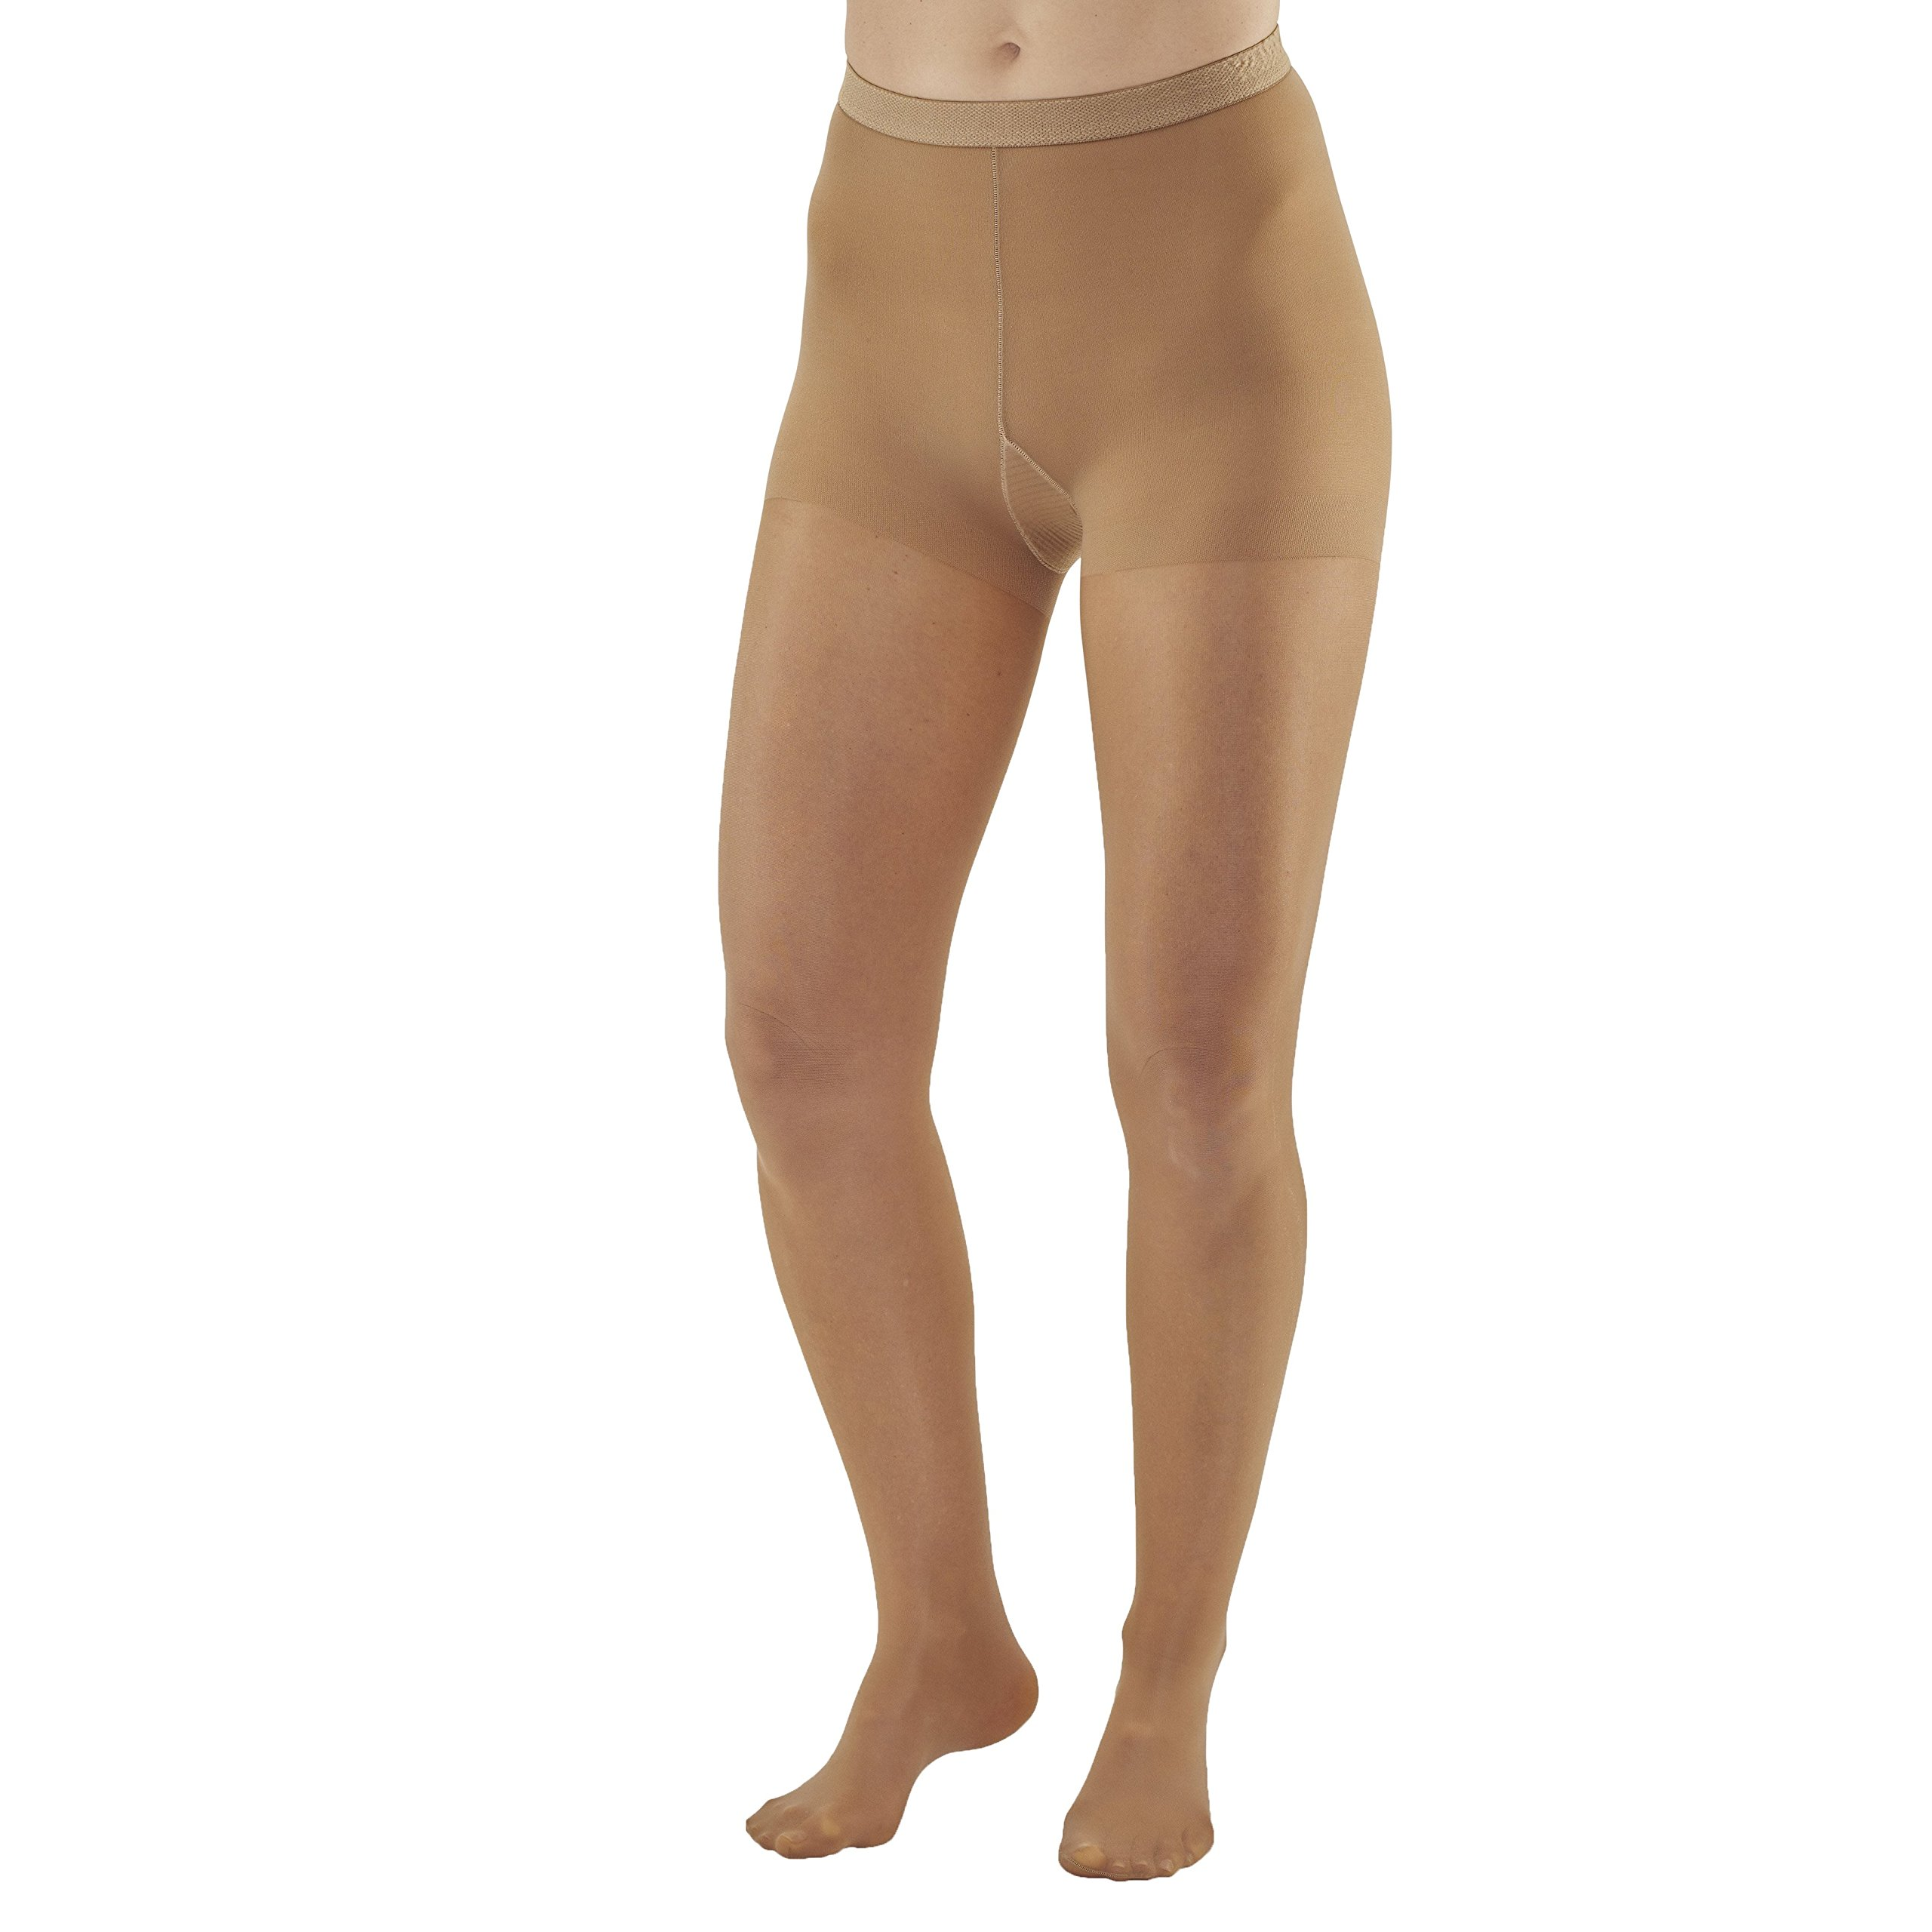 Ames Walker Women's AW Style 78 Soft Sheer Compression Pantyhose - 8-15 mmHg Natural Medium 78-M-NATURAL Nylon/Spandex